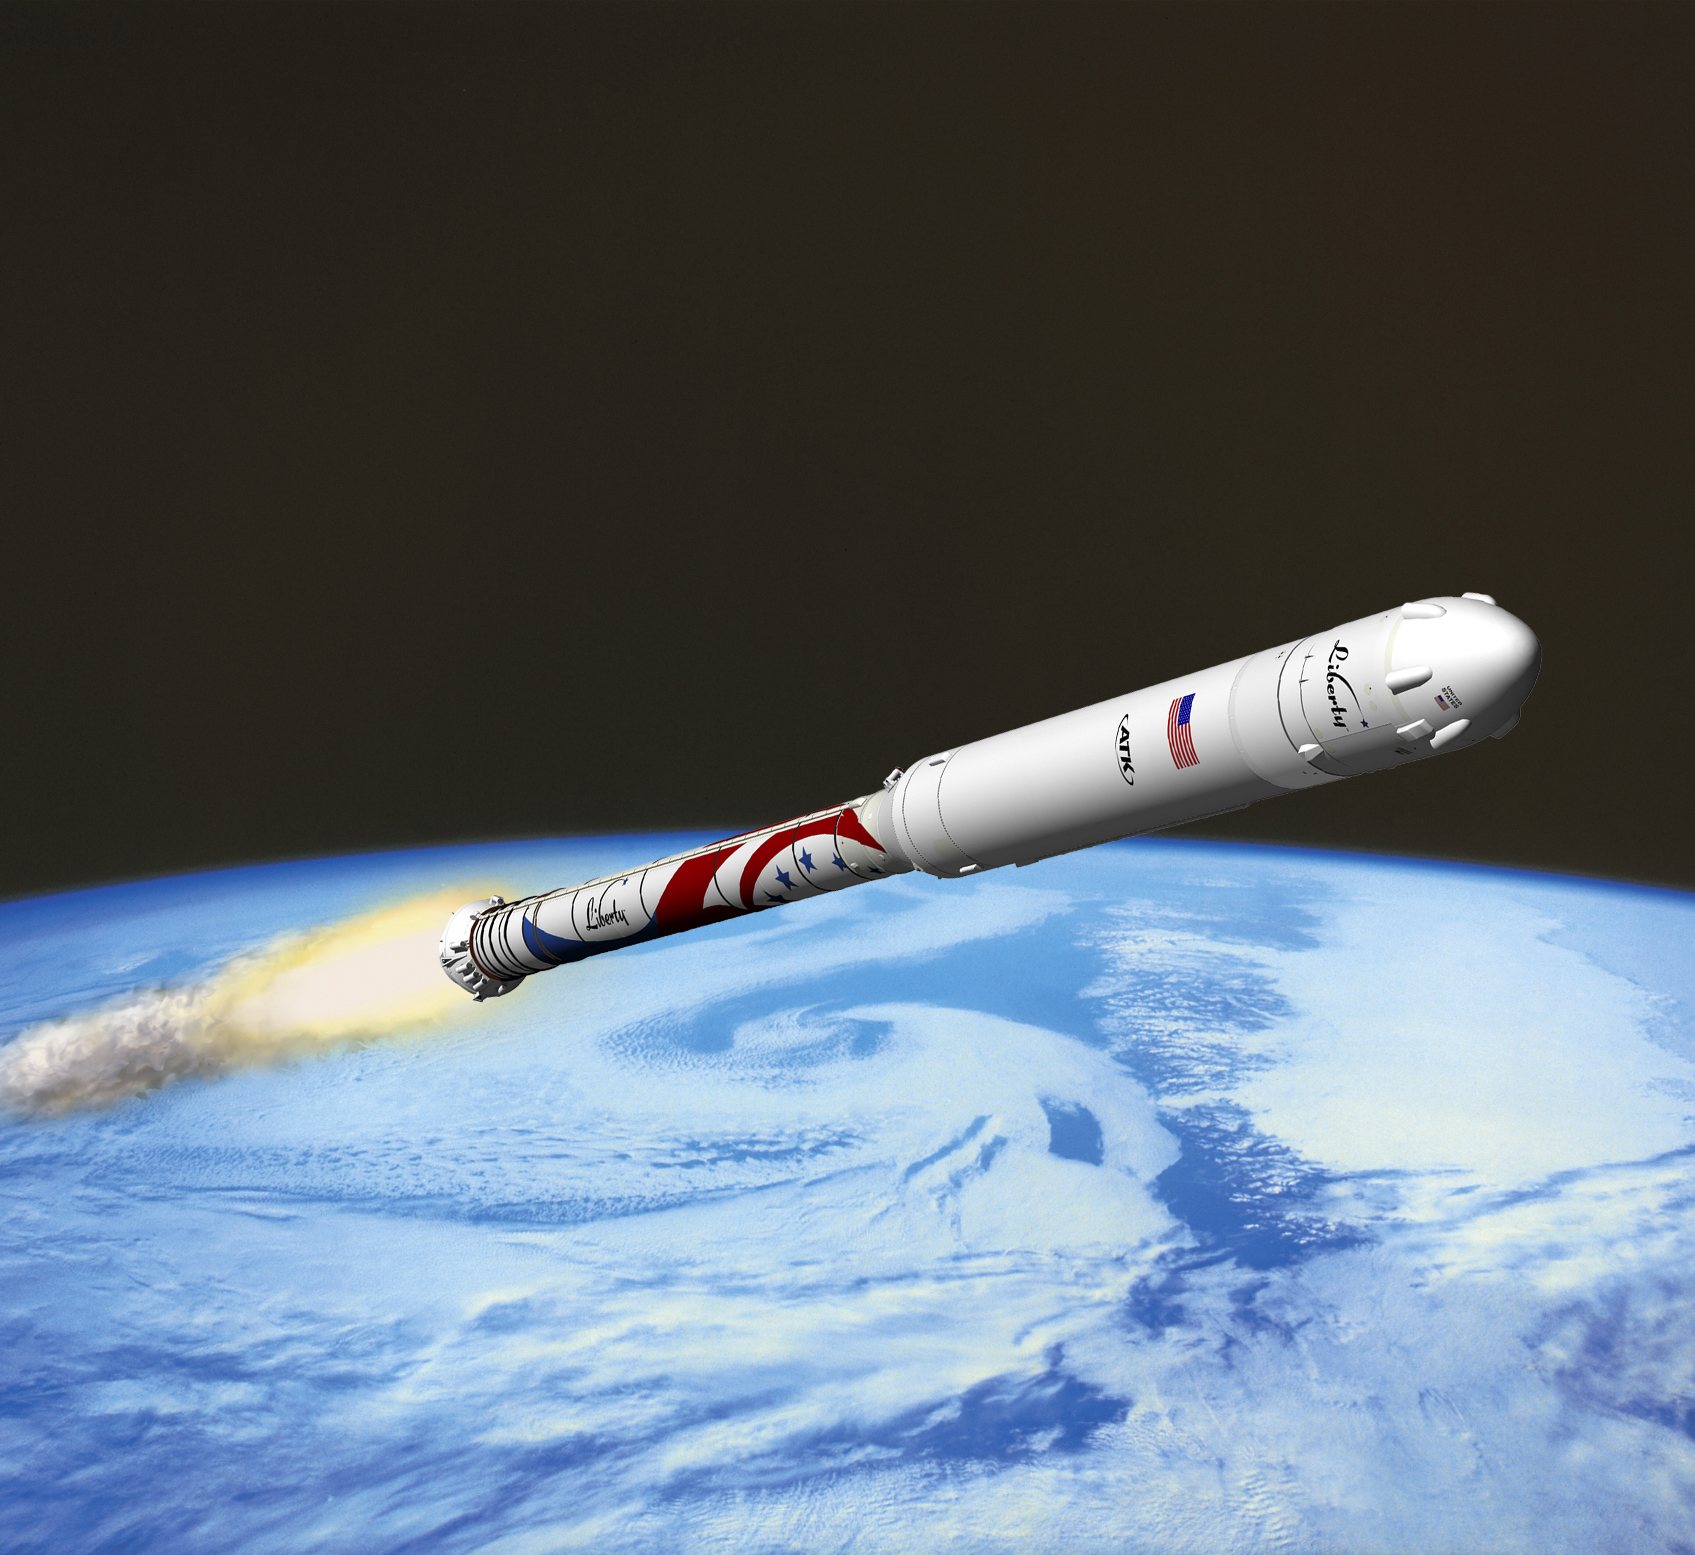 Liberty Rocket Launches Toward Space